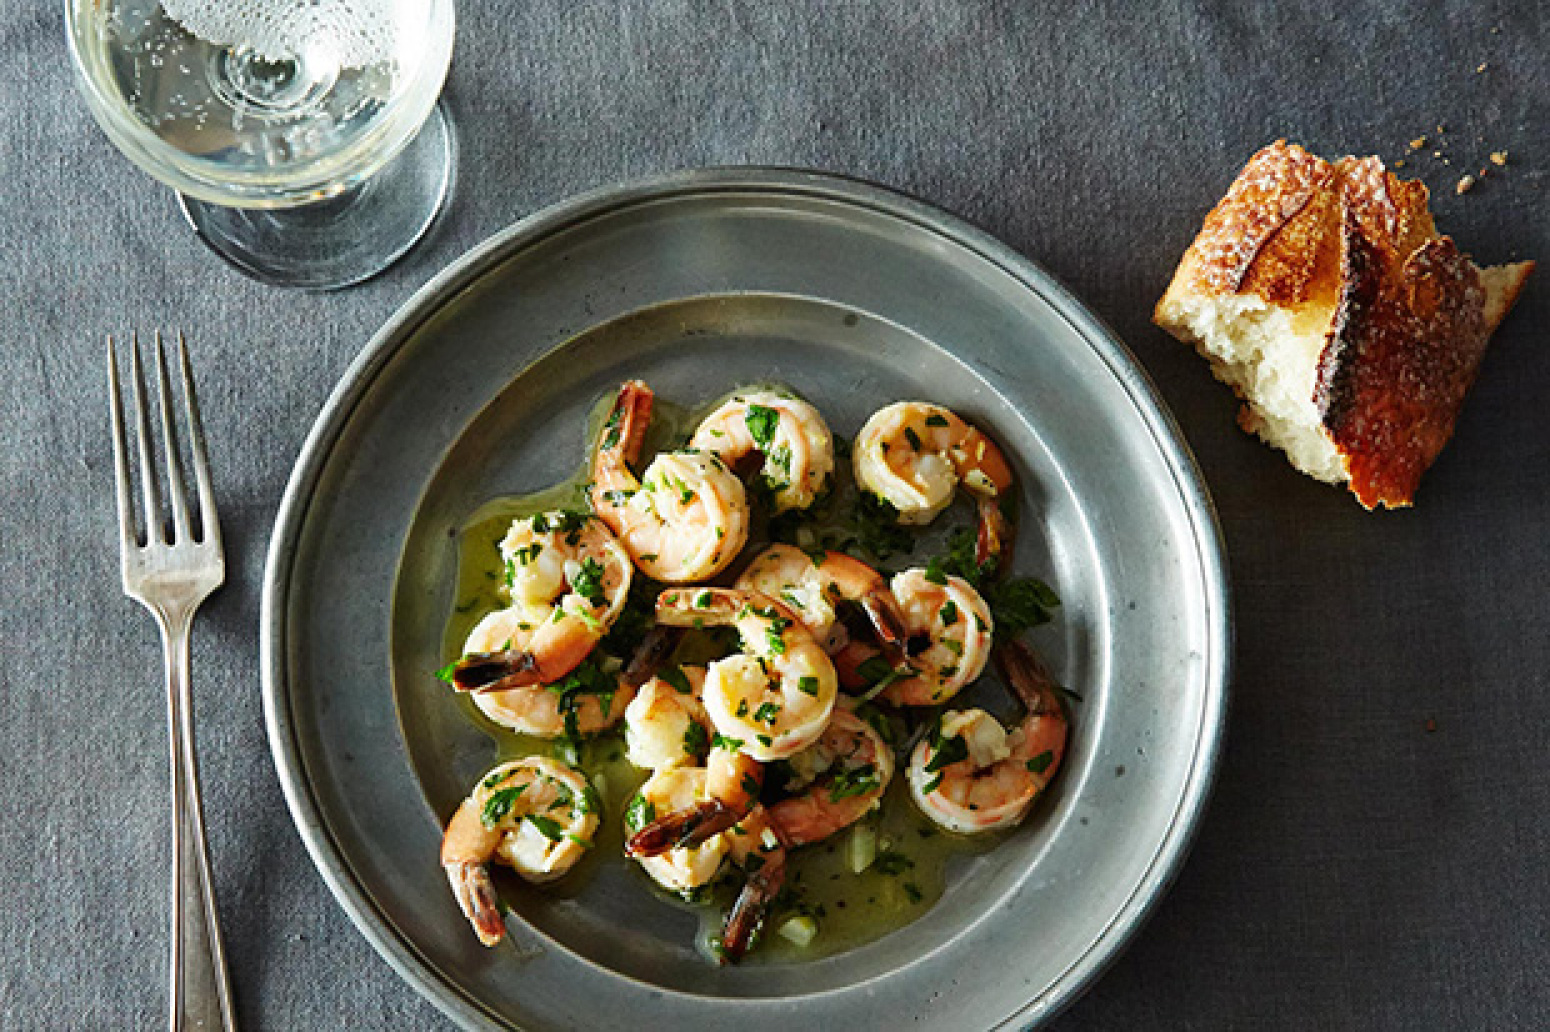 Sauted Shrimp with Lemon Garlic and Parsley Recipe 2 | Just A Pinch ...